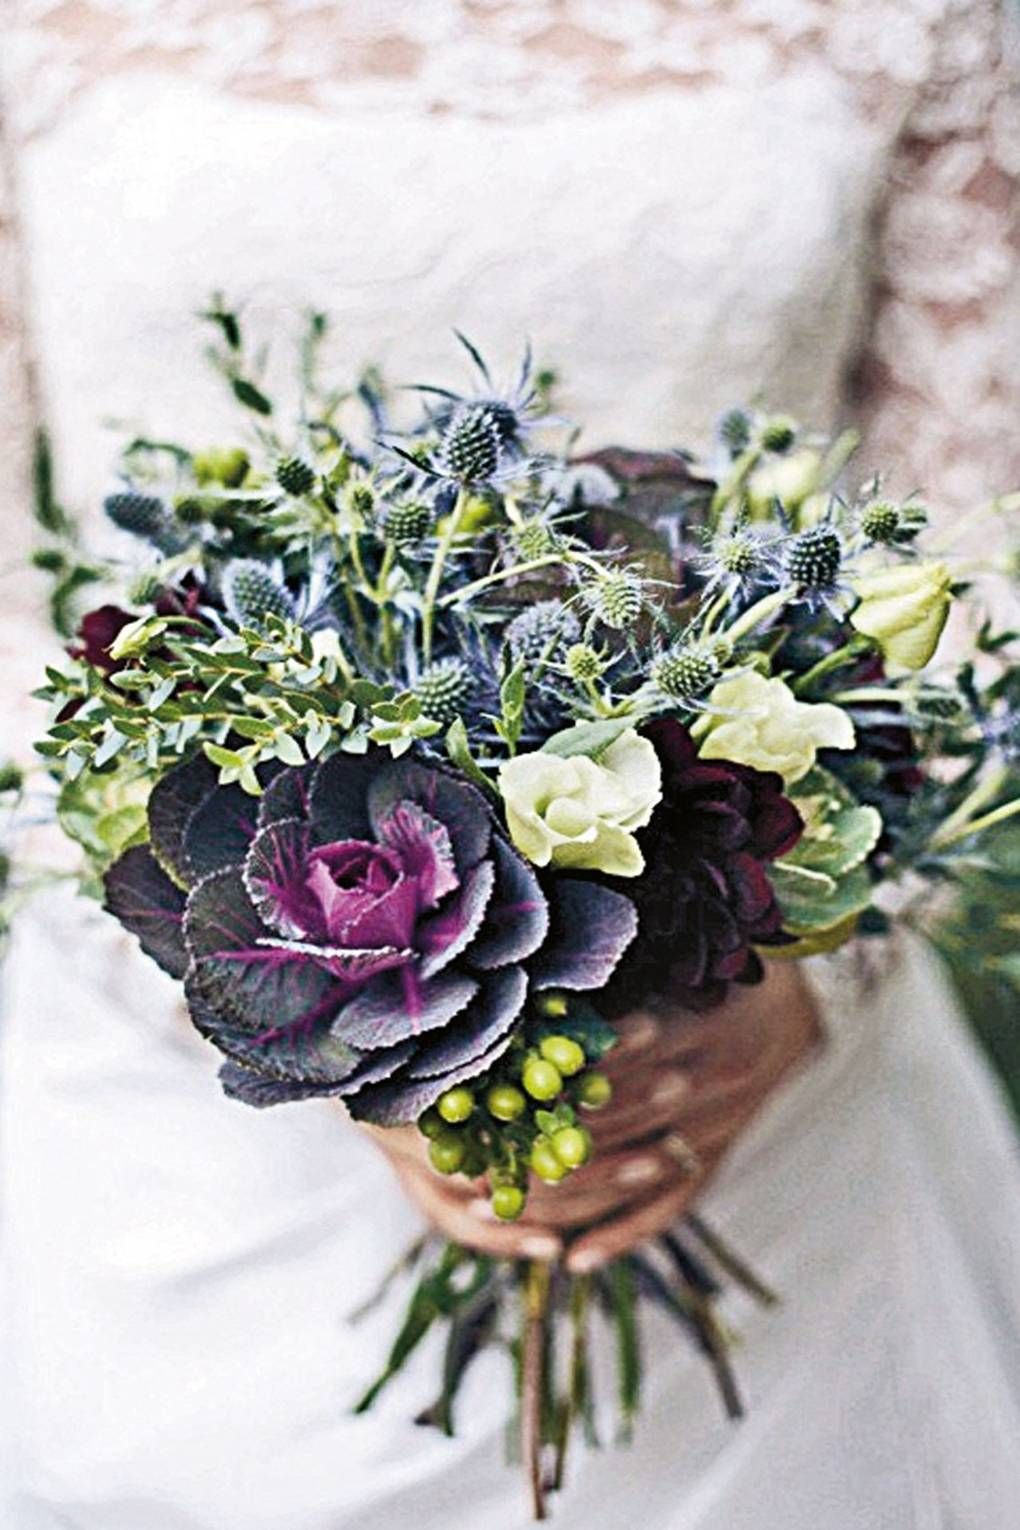 Wedding Flowers & Bouquets in 2020 Herb wedding, Wedding